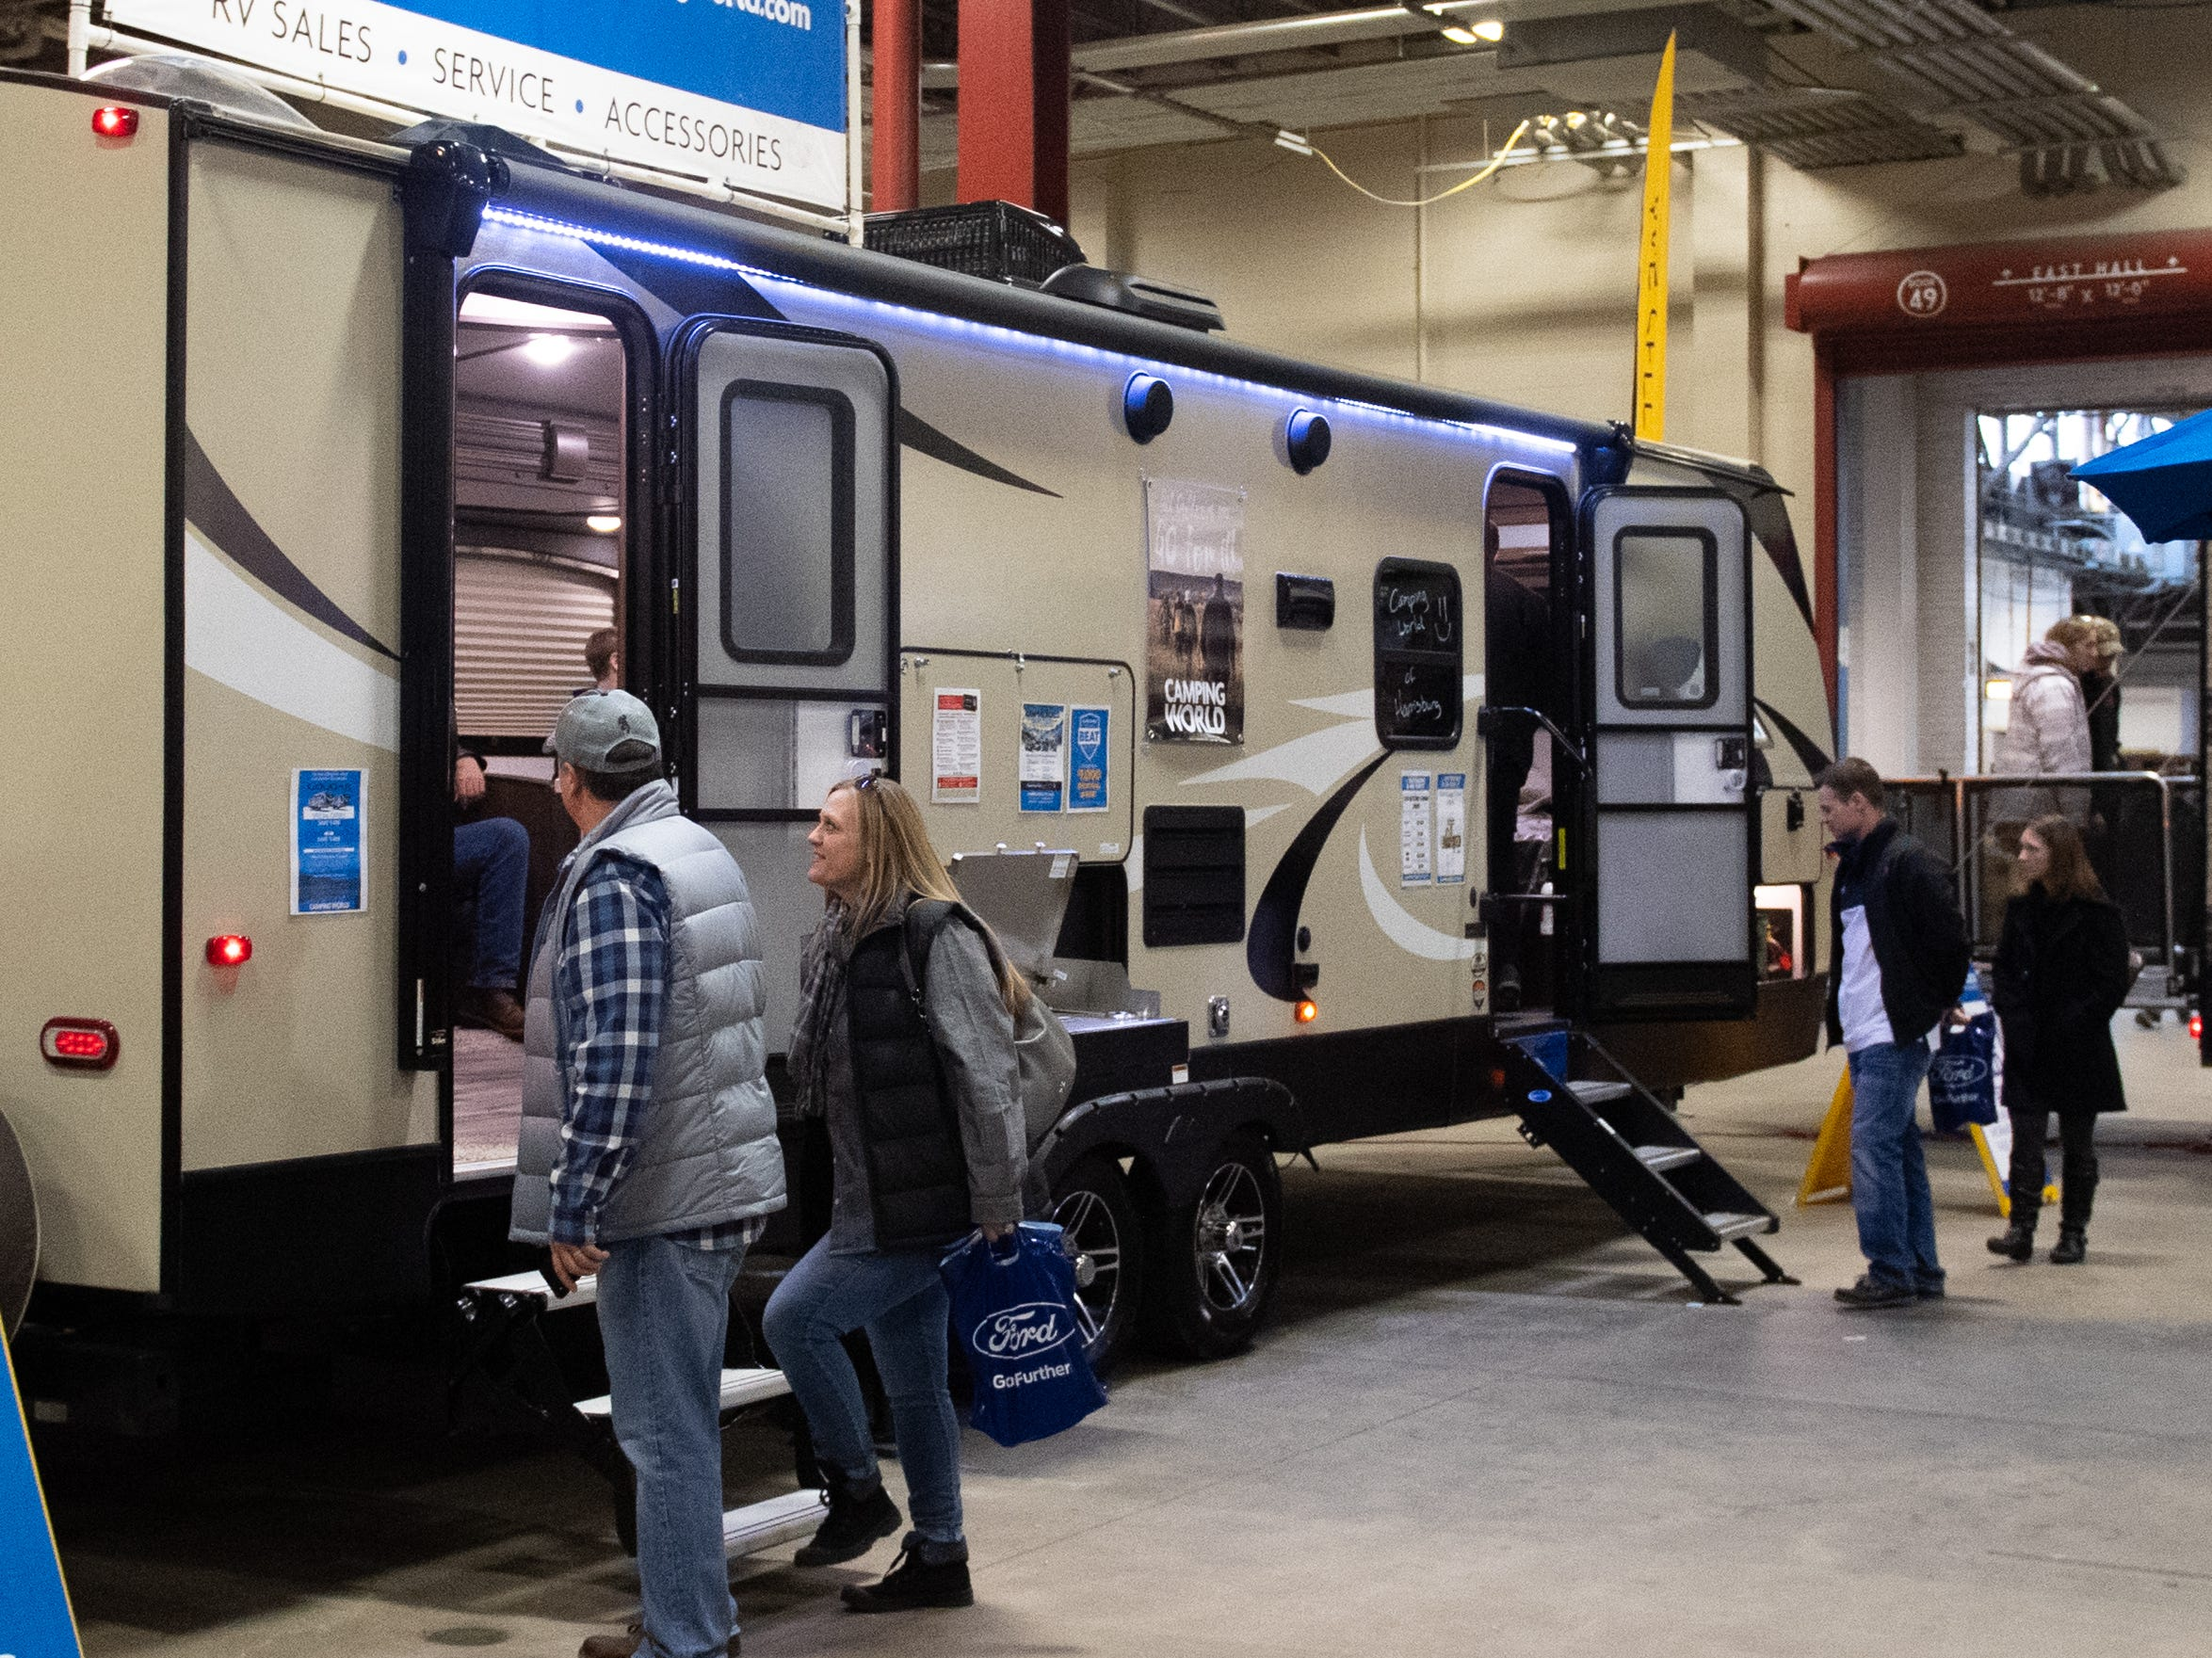 Exhibitors check out the RV section during the 2019 Pennsylvania Auto Show, Saturday, January 26, 2019. The auto show continues on Sunday from 10 a.m. to 5 p.m.